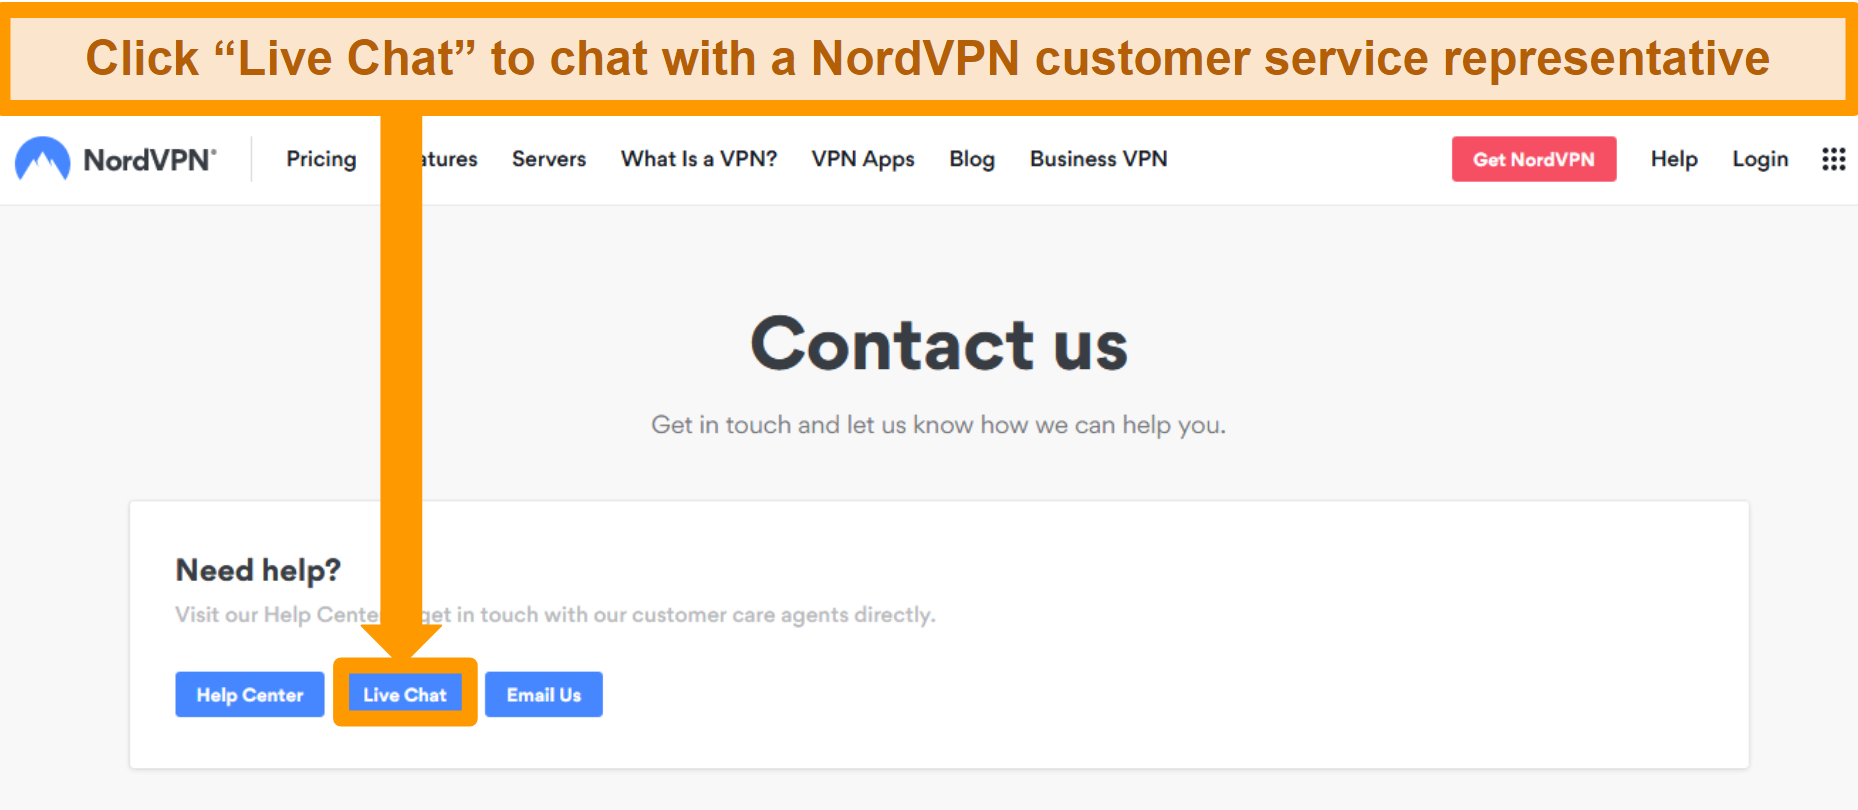 Screenshot of the NordVPN Contact us page showing the Live Chat button